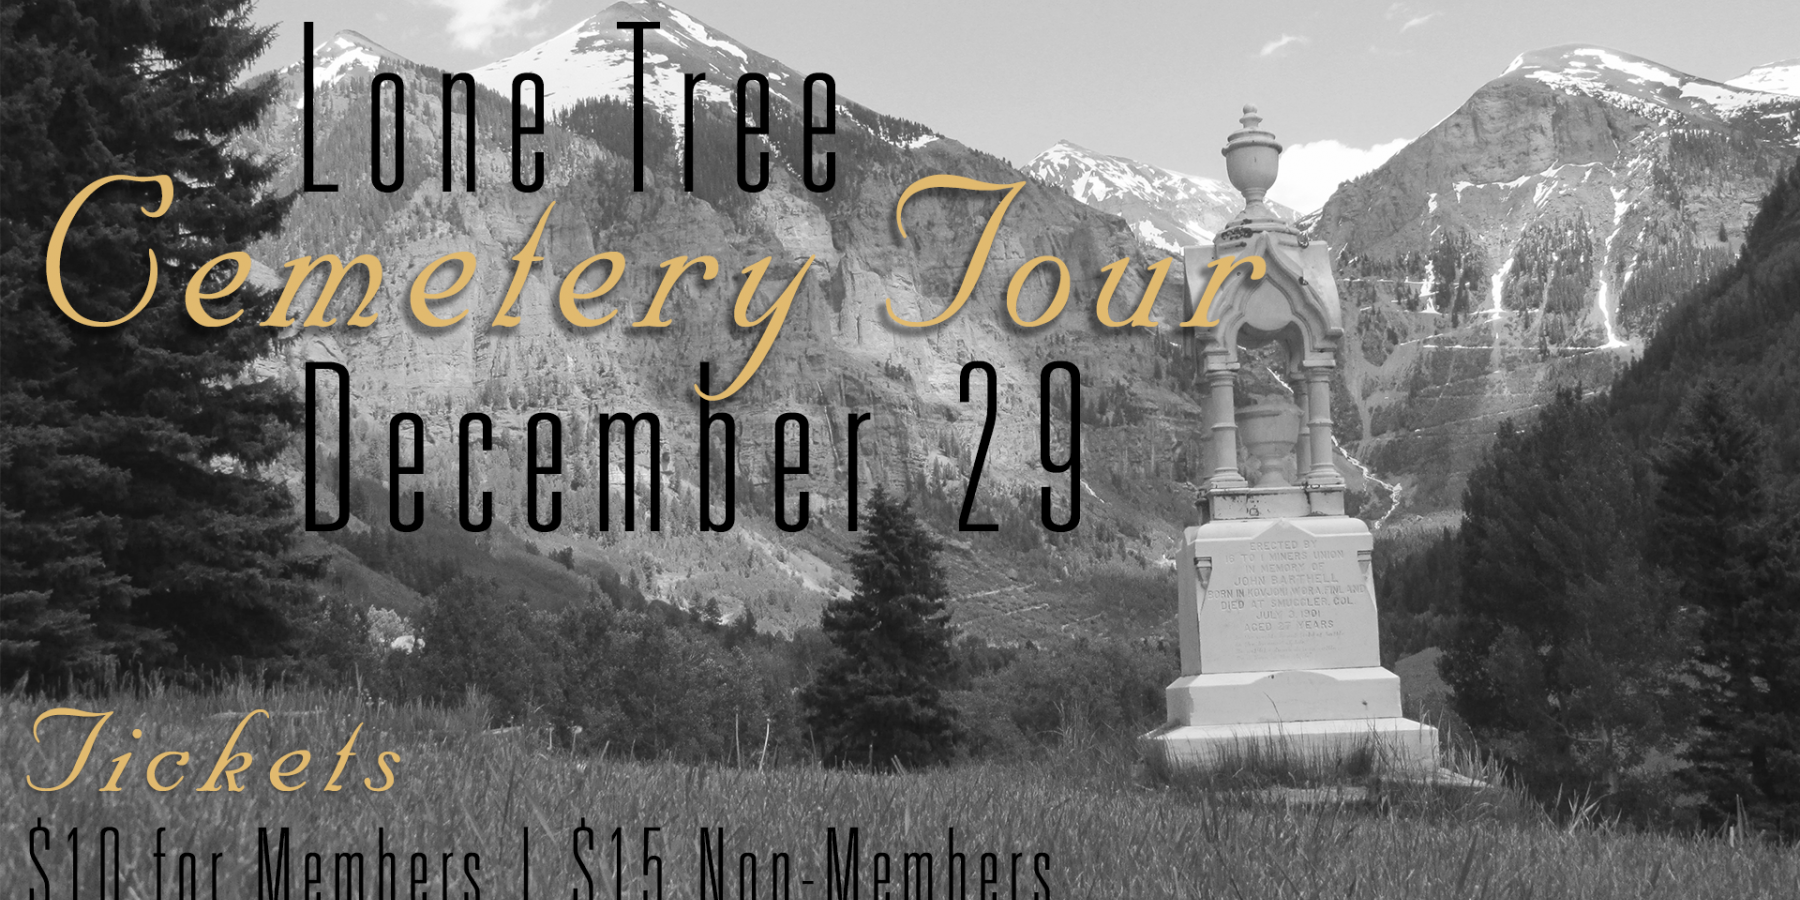 Winter Cemetery Tour FB Event 12.29